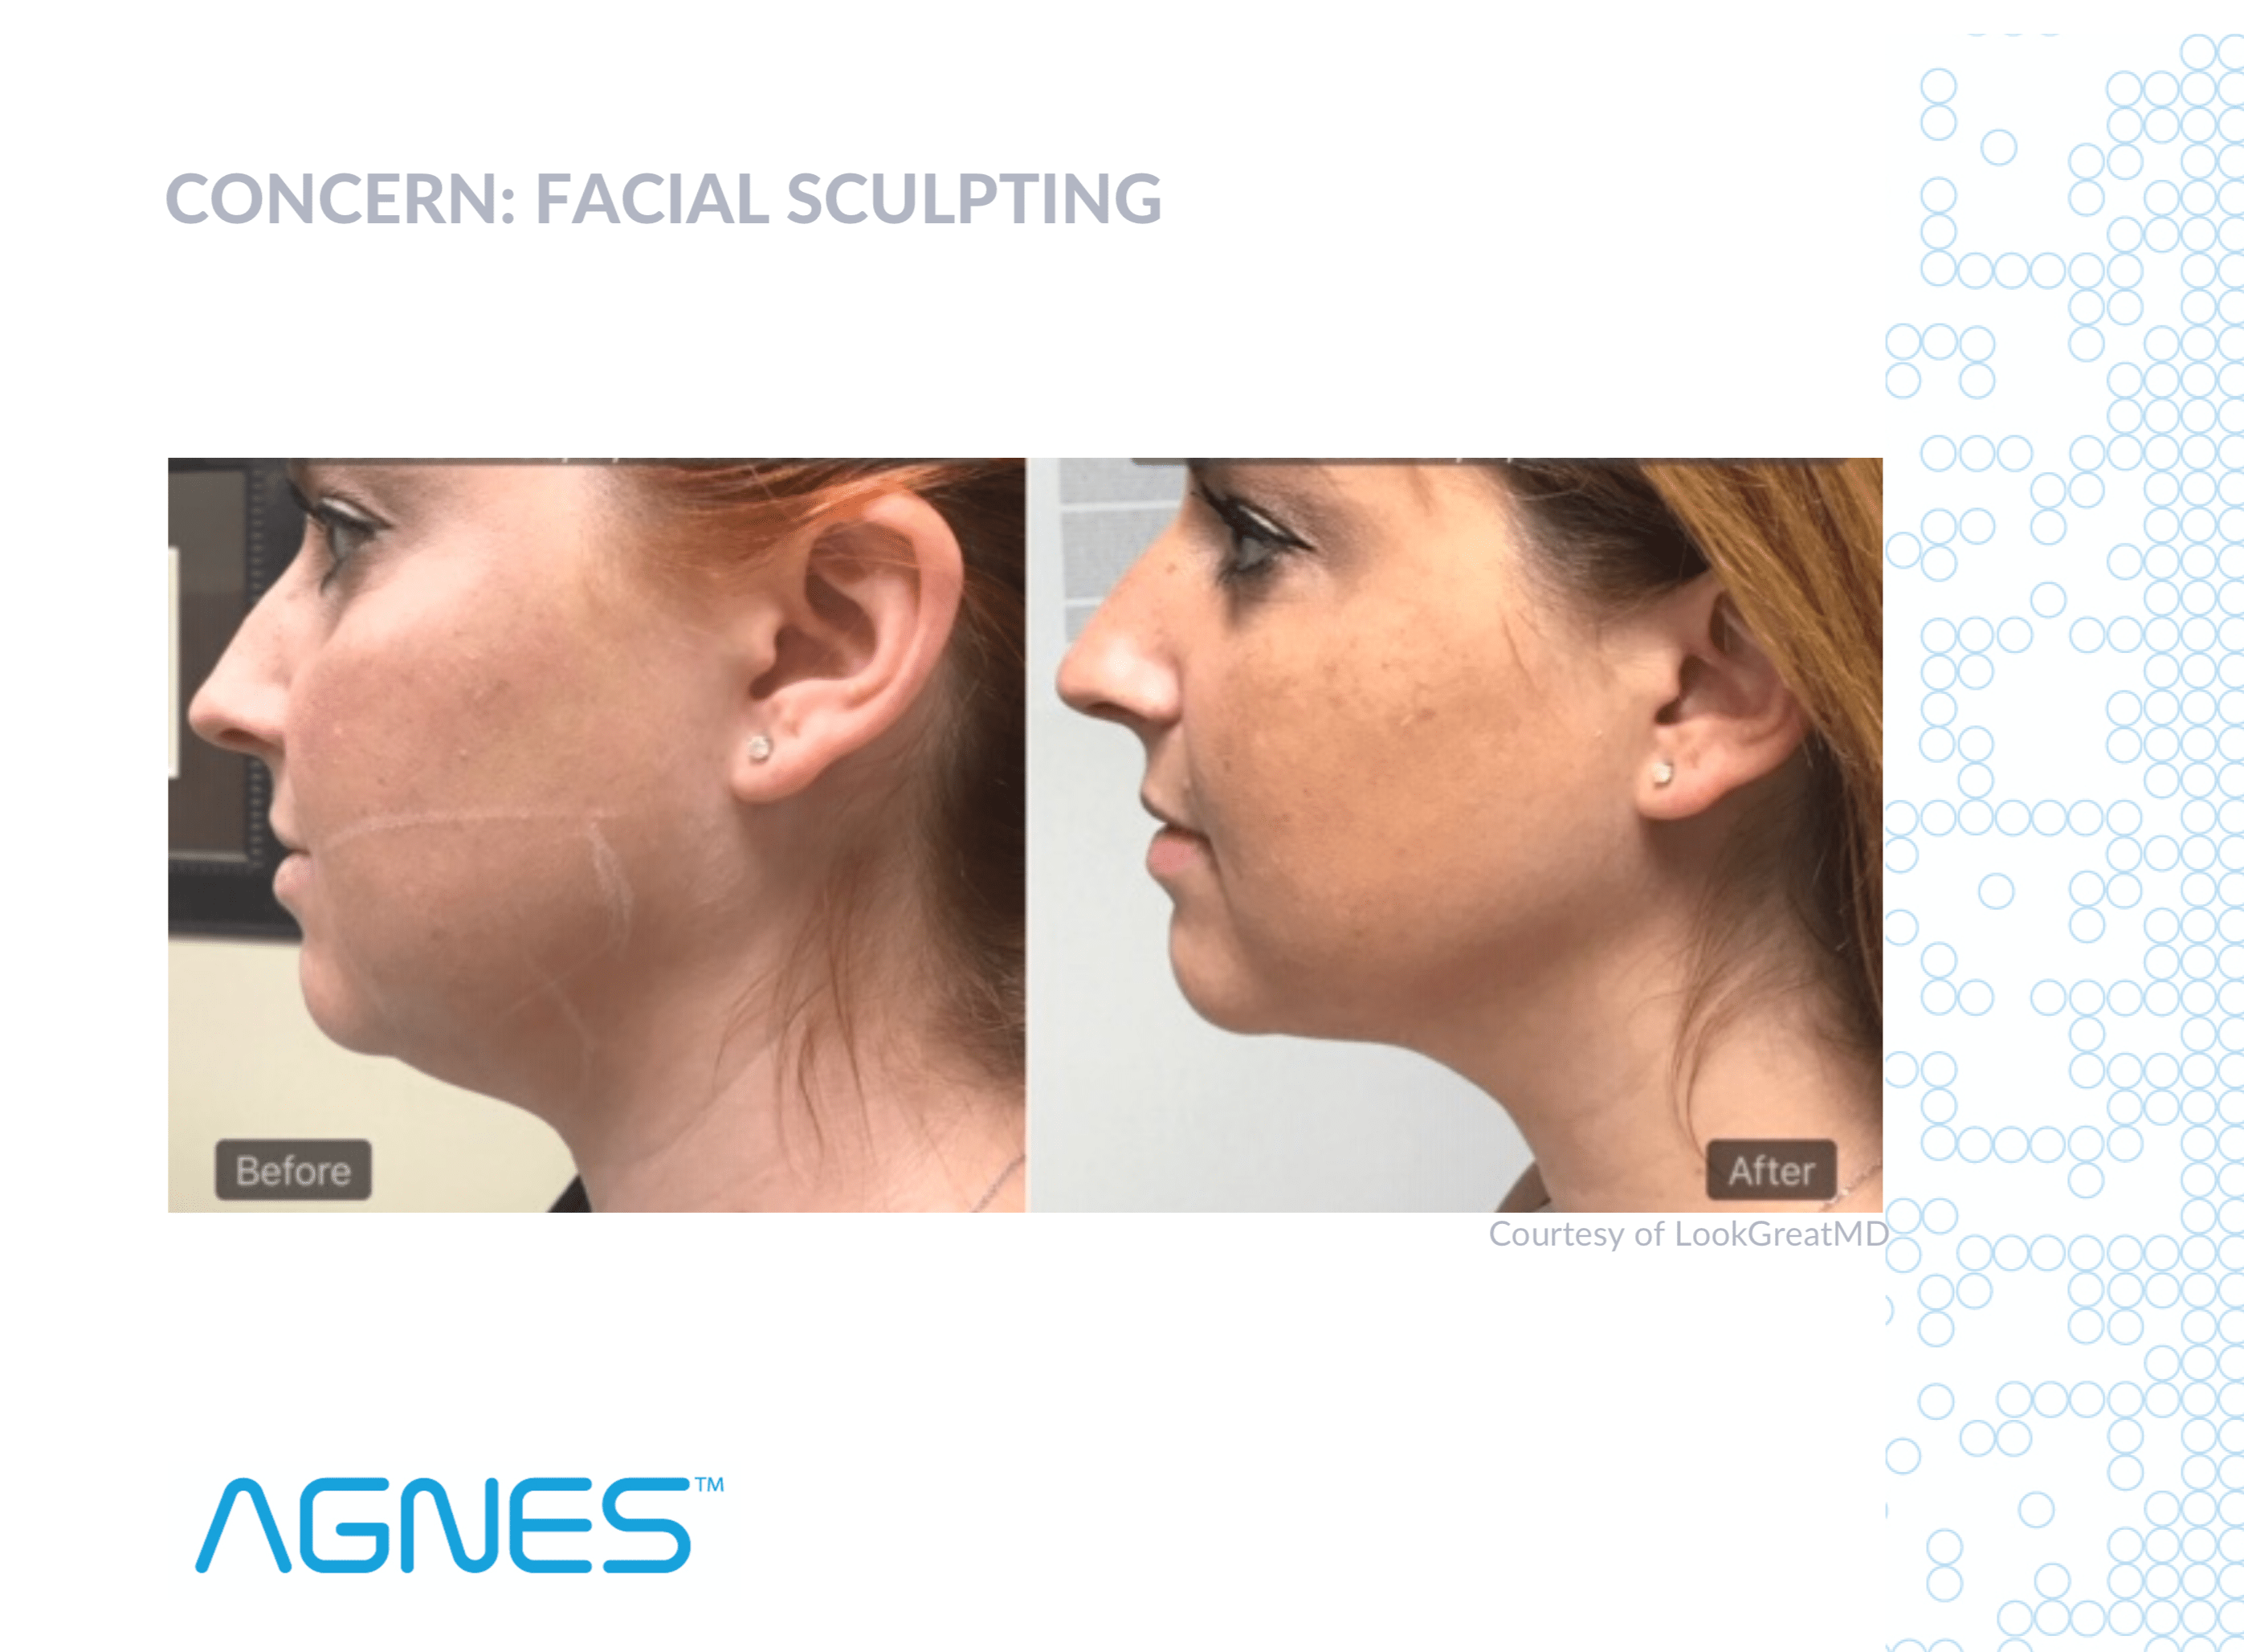 Agnes RF Microneedling - Non-Surgical Solutions. Tightens, Smooths & Sculpts. Unmatched Precision Targeting To Treat Problem Areas.